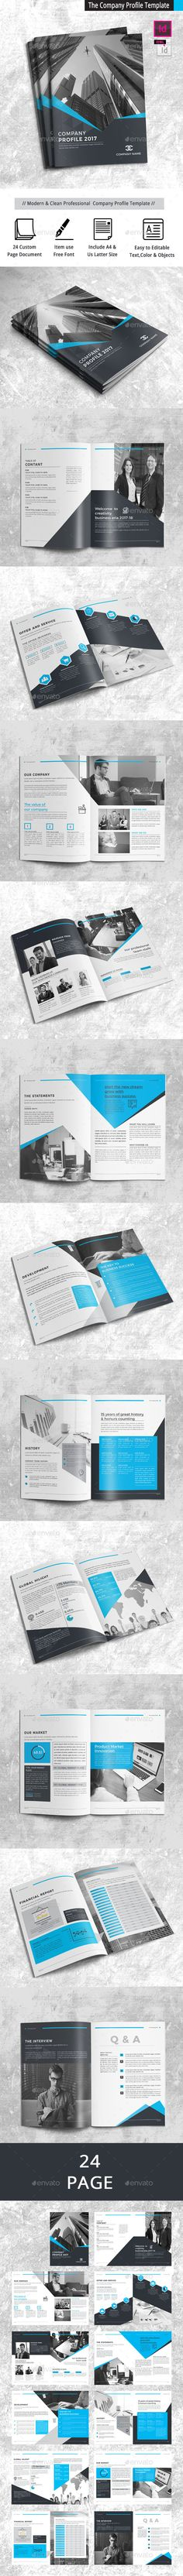 The Company Profile 24 Pages Template InDesign INDD